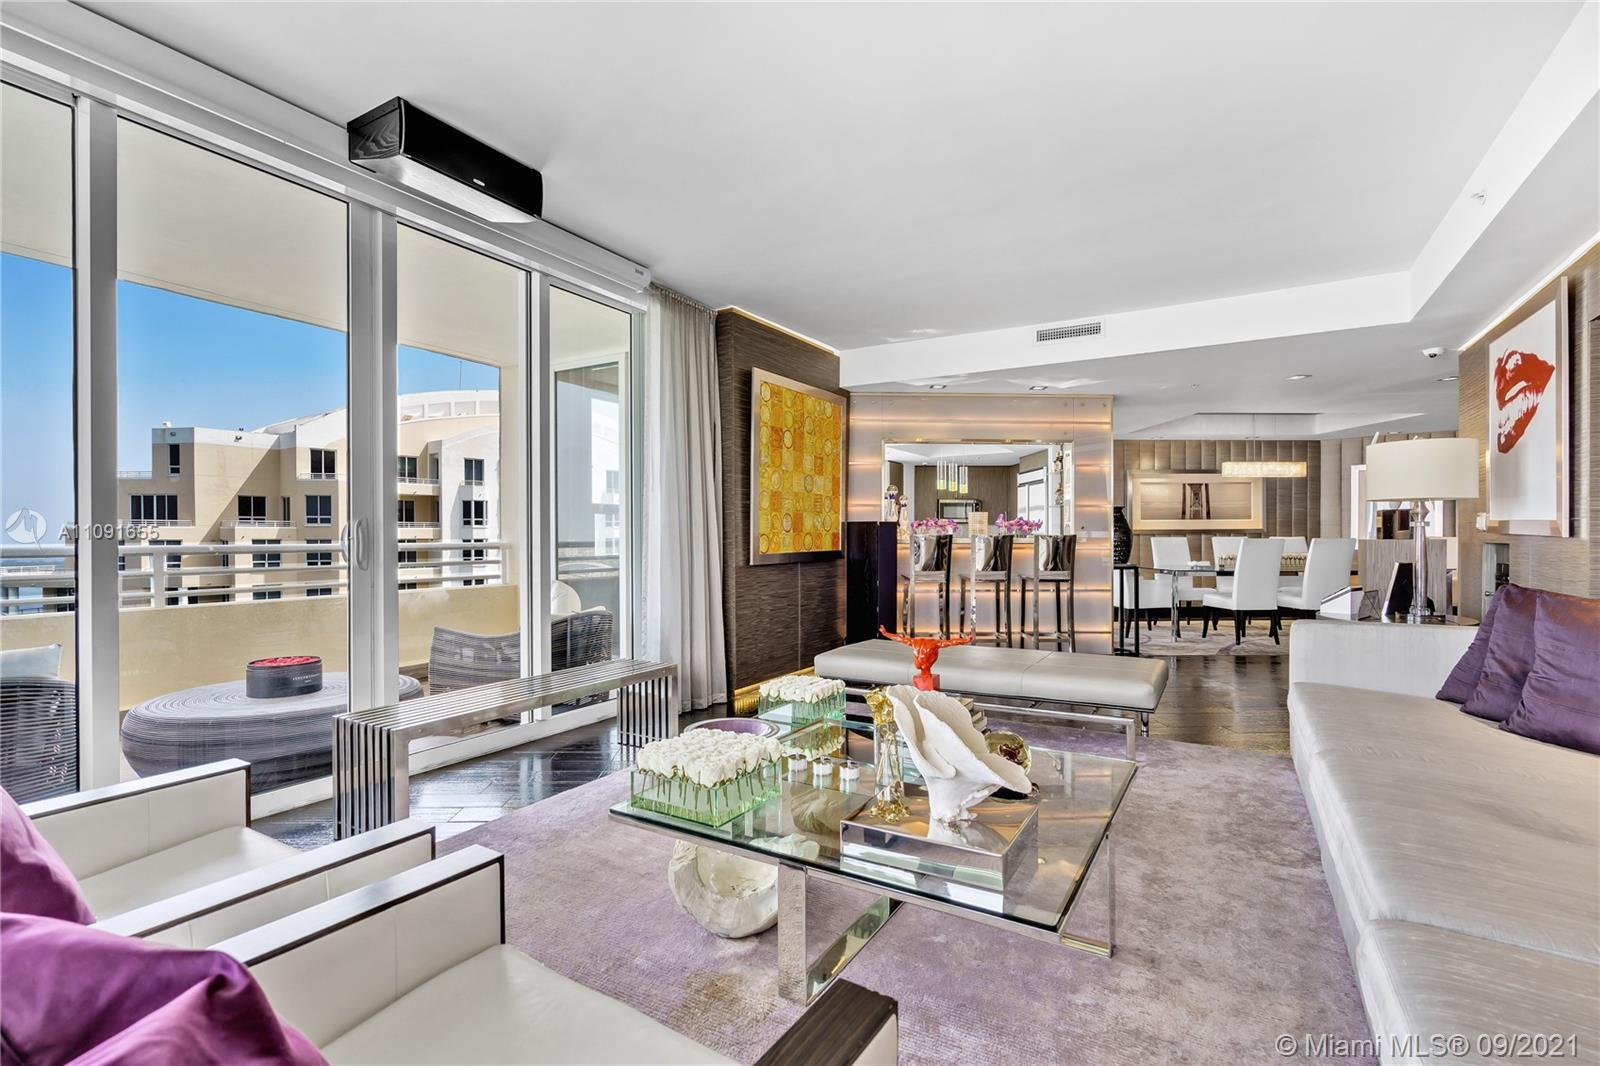 A must see!! Gorgeous high-end building with 24hr concierge, valet, and security. Amazing corner uni